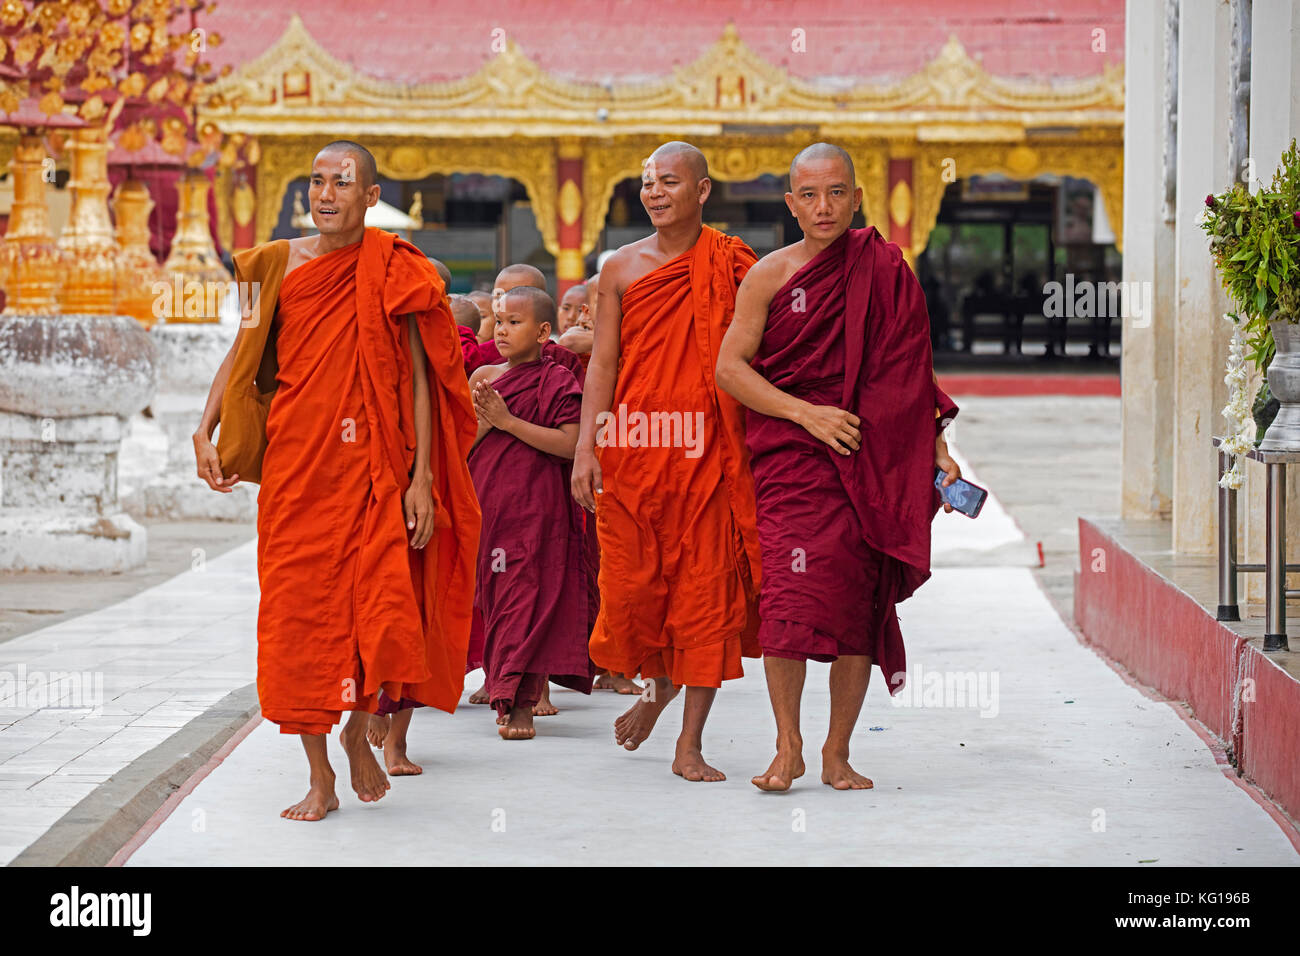 Buddhist monks and novices at the Shwezigon Pagoda / Shwezigon Paya, golden temple in Nyaung-U near Bagan / Pagan, - Stock Image